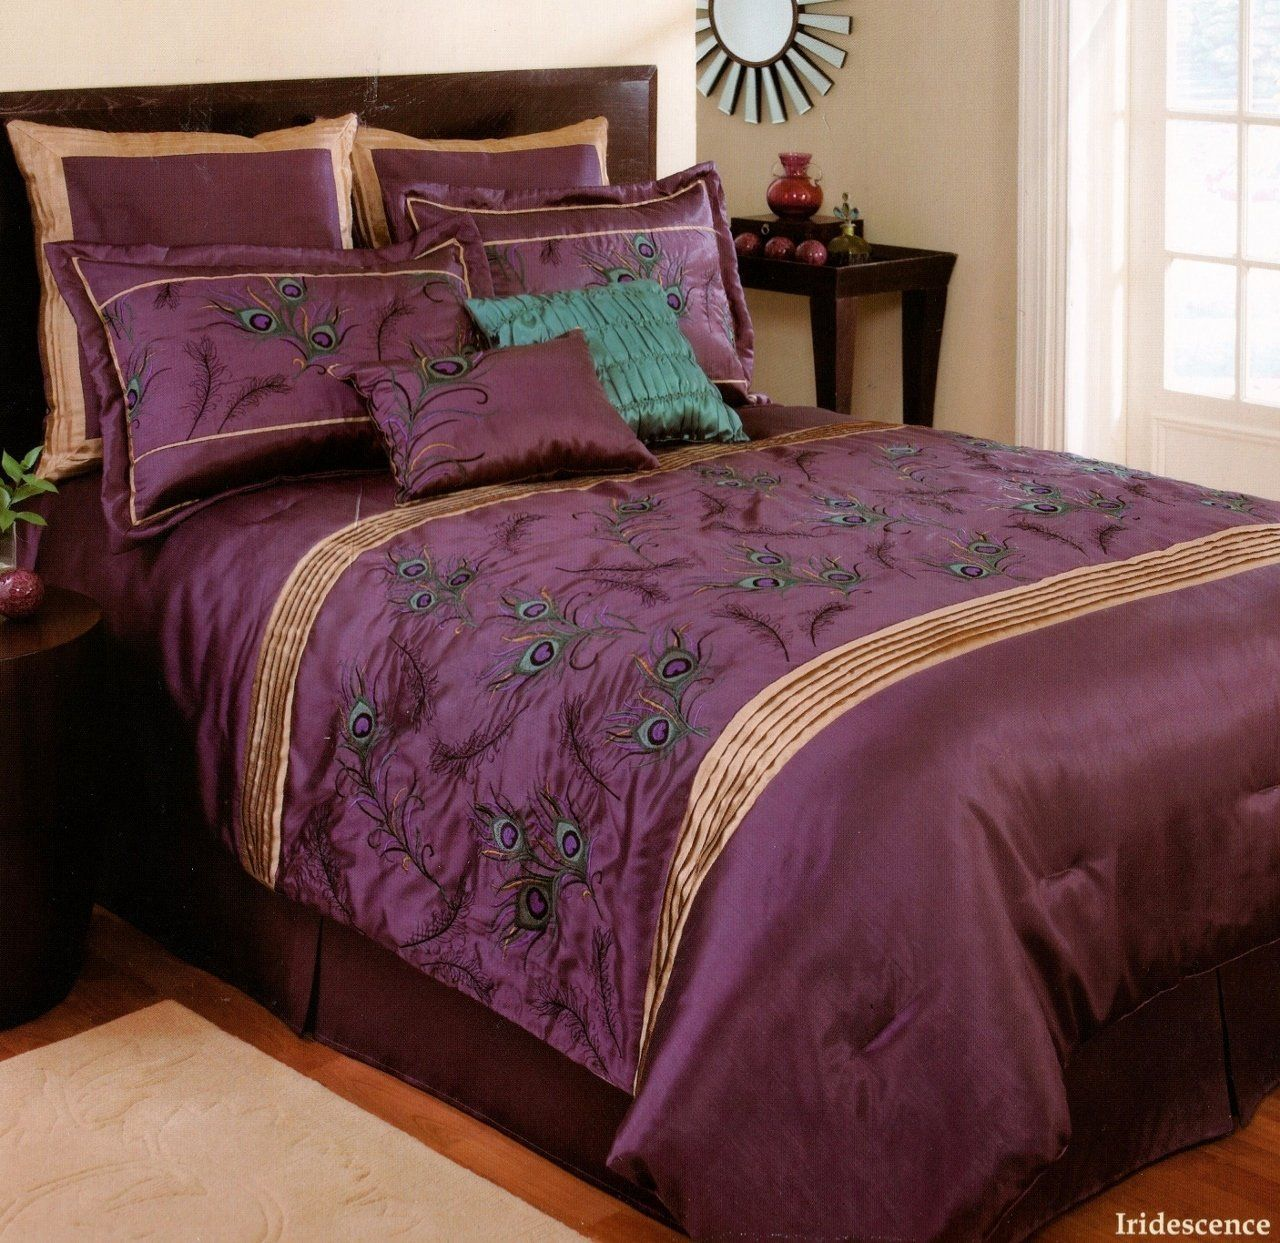 Peacock bedroom set - Peacock Bedding Collection Peacock Bedding Bedroom Decorating Ideas